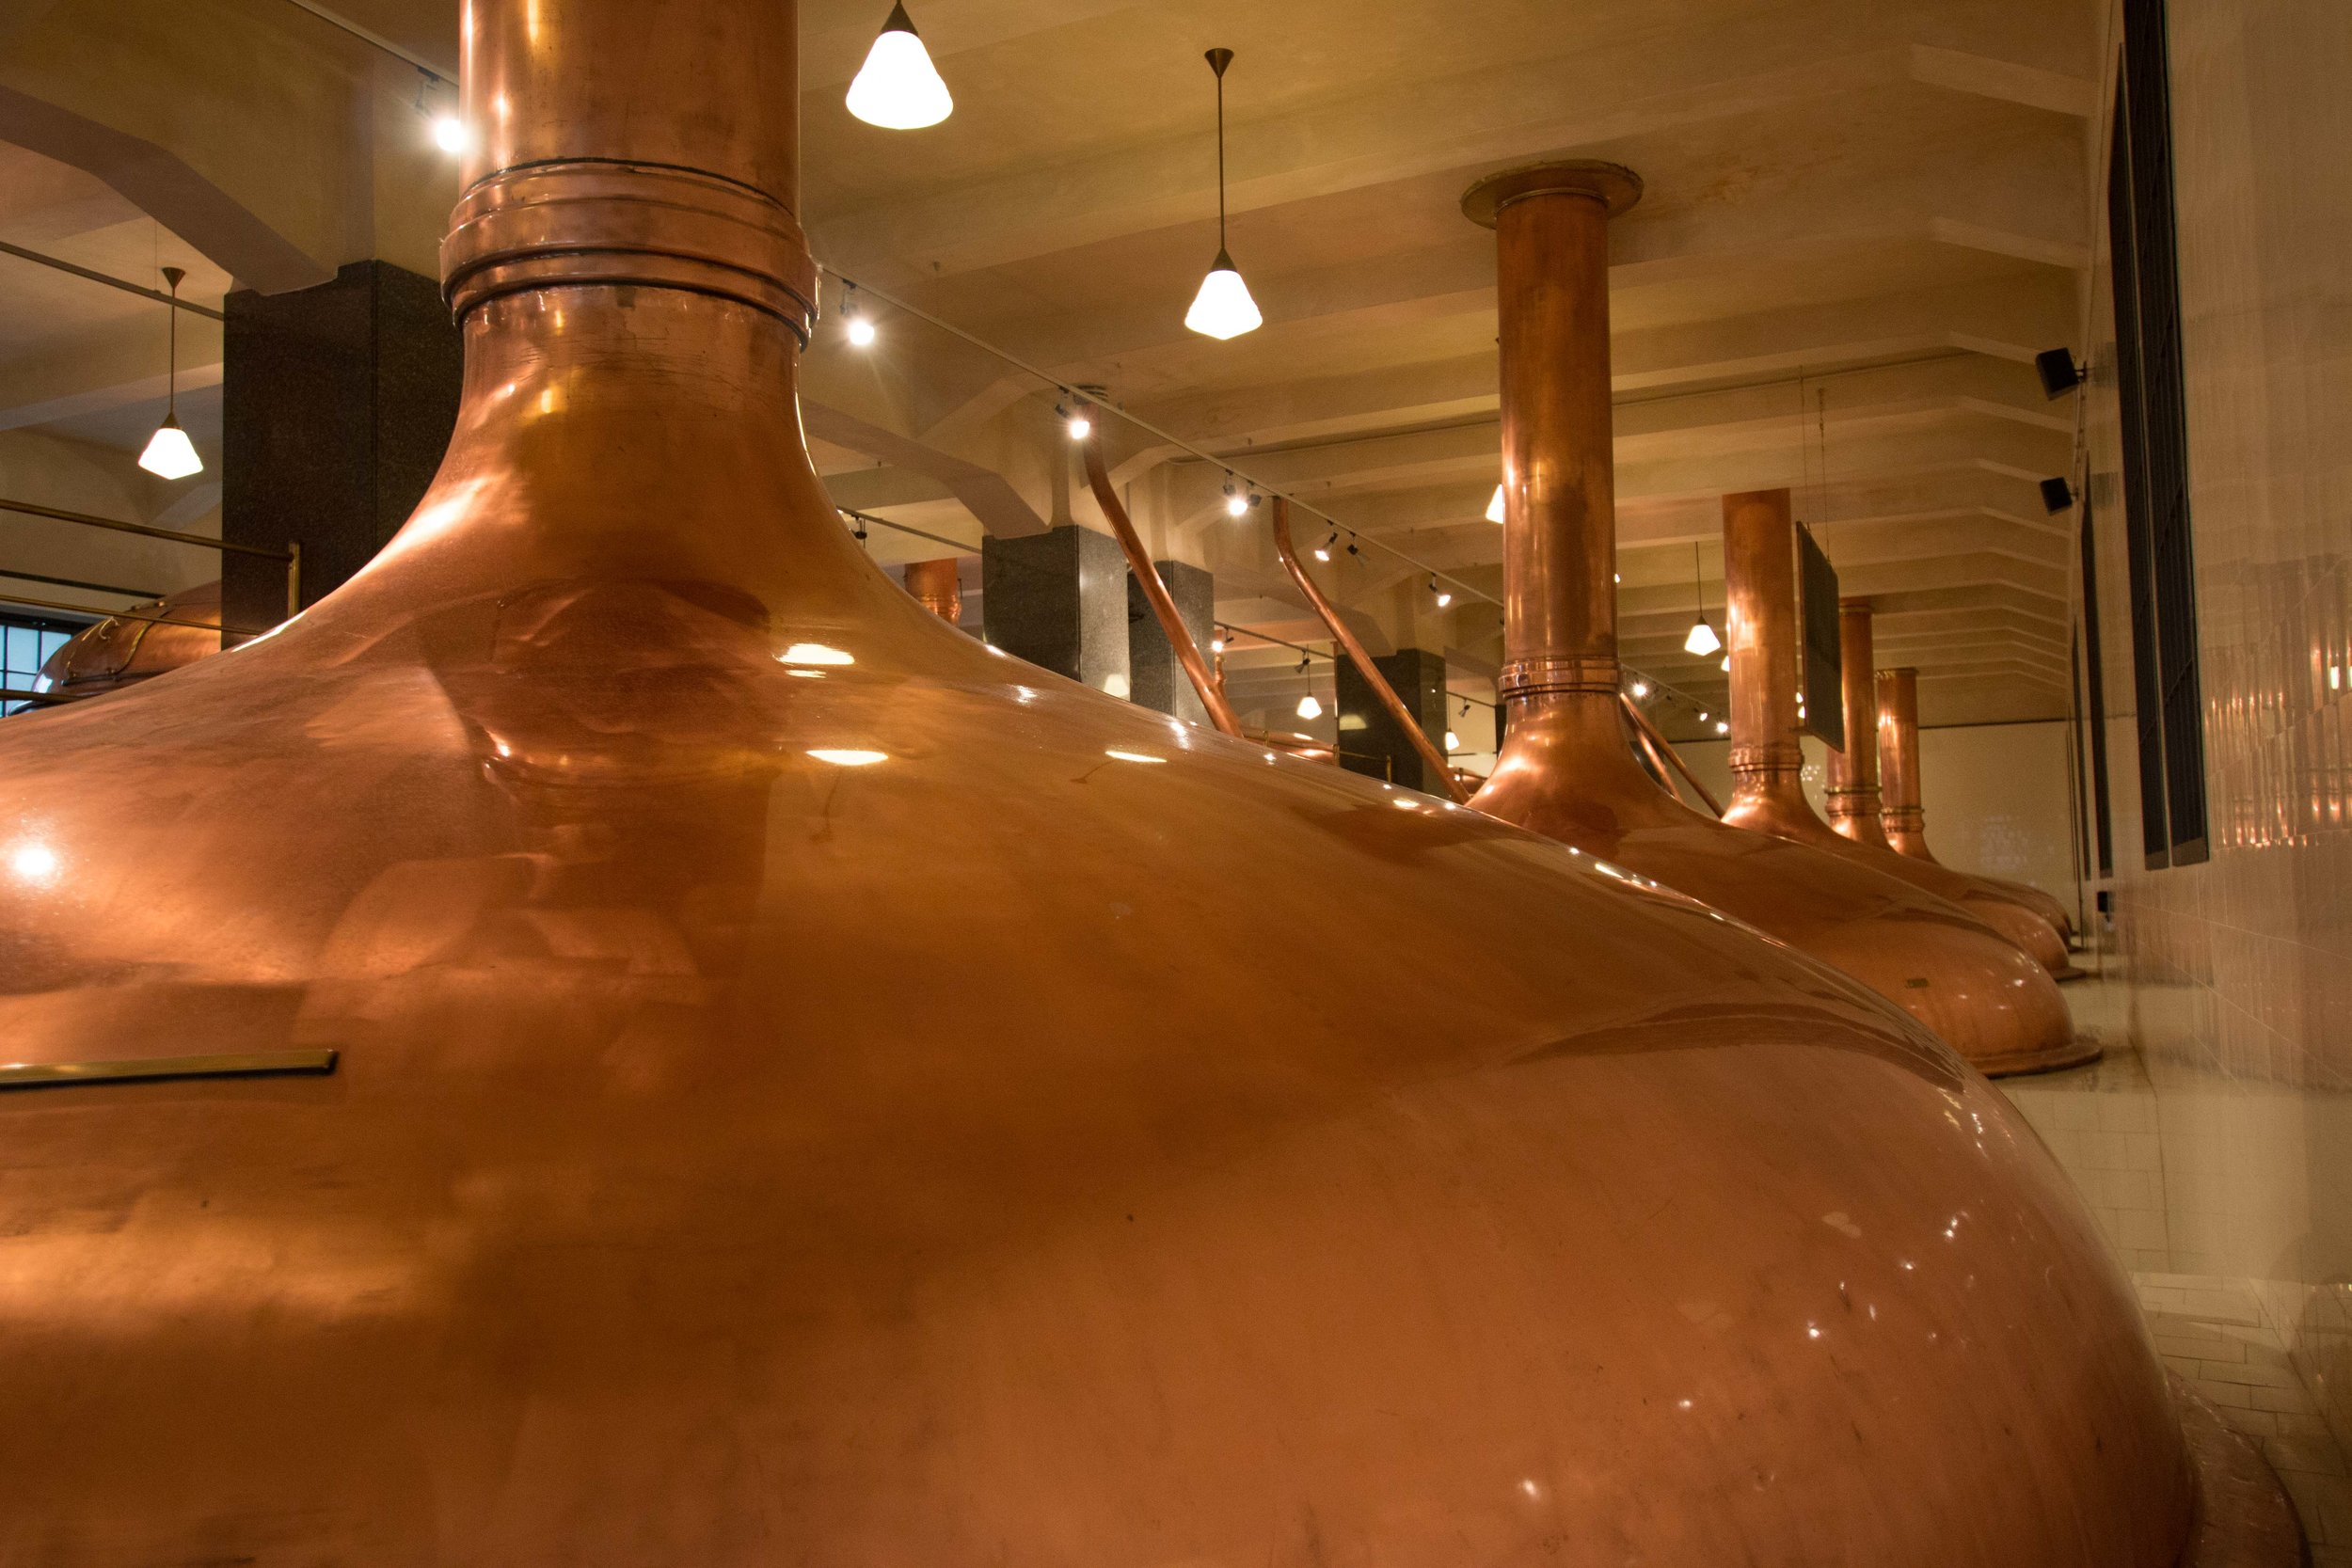 Brew Kettles in the Pilsner Urquell Brewery